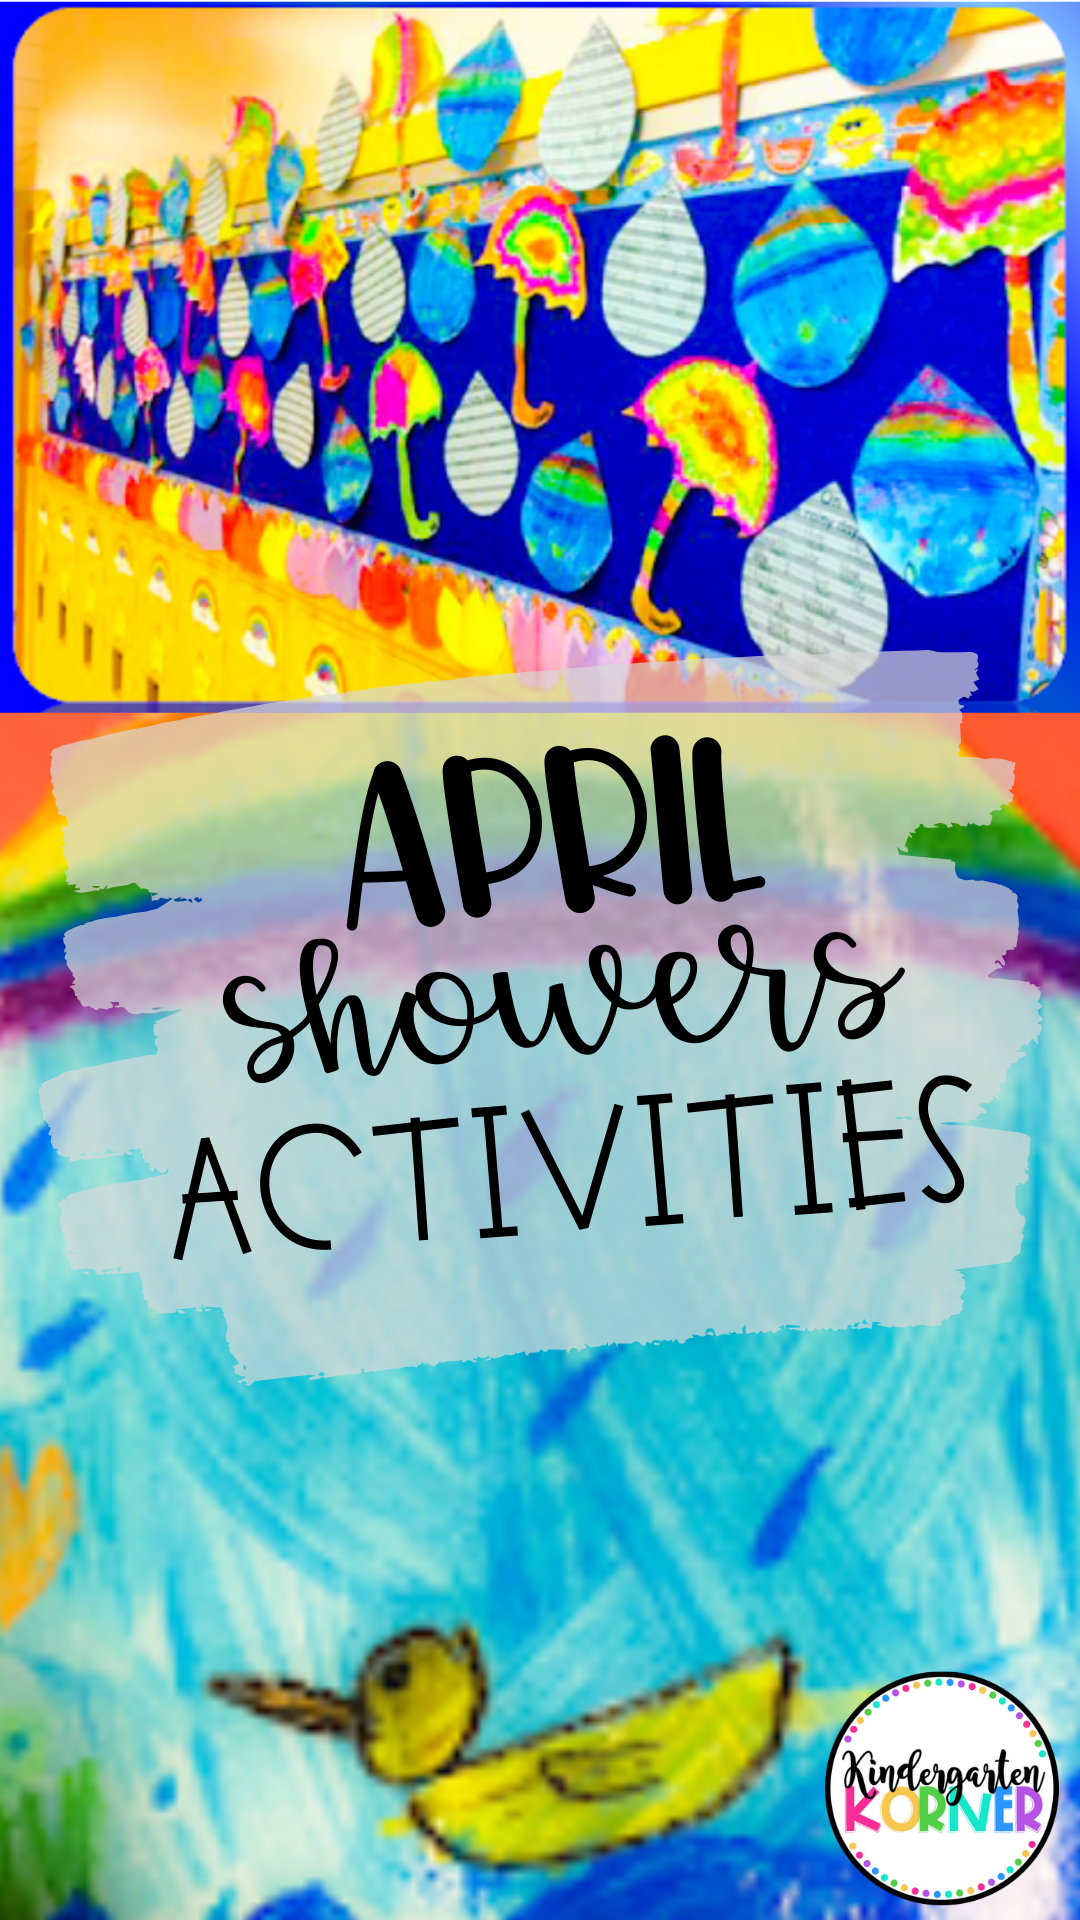 April Showers Bring May Flowers Raindrop Writing Craft